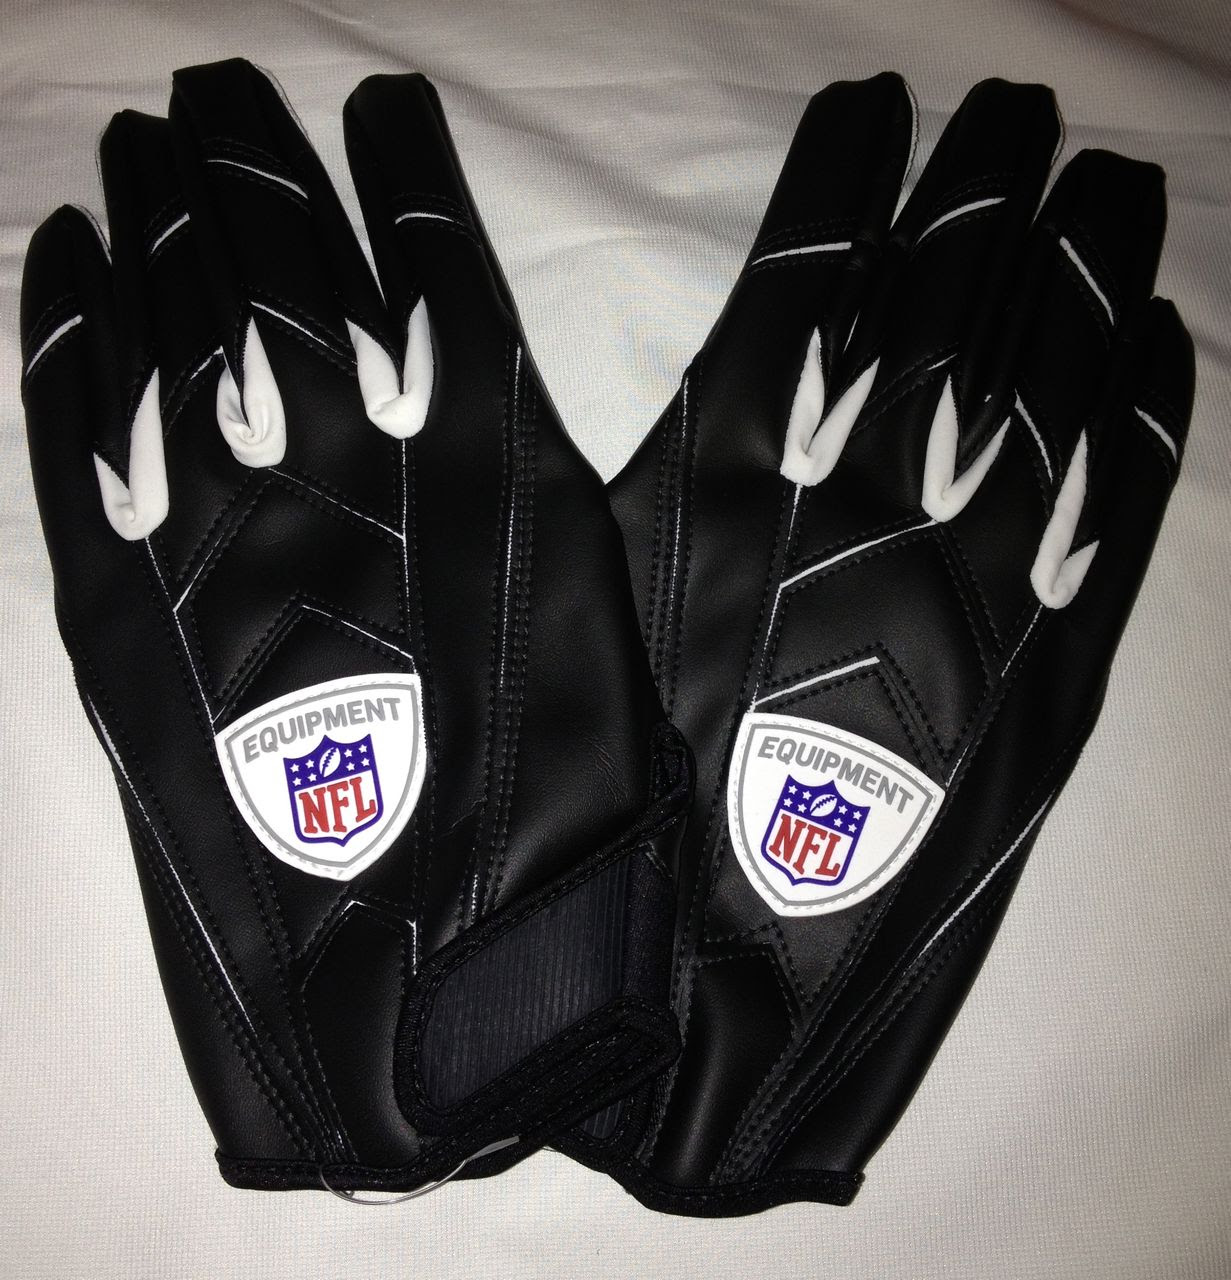 NEW Mens 3XL UNDER ARMOUR NFL Equipment Black White Receiver Football Gloves  eBay